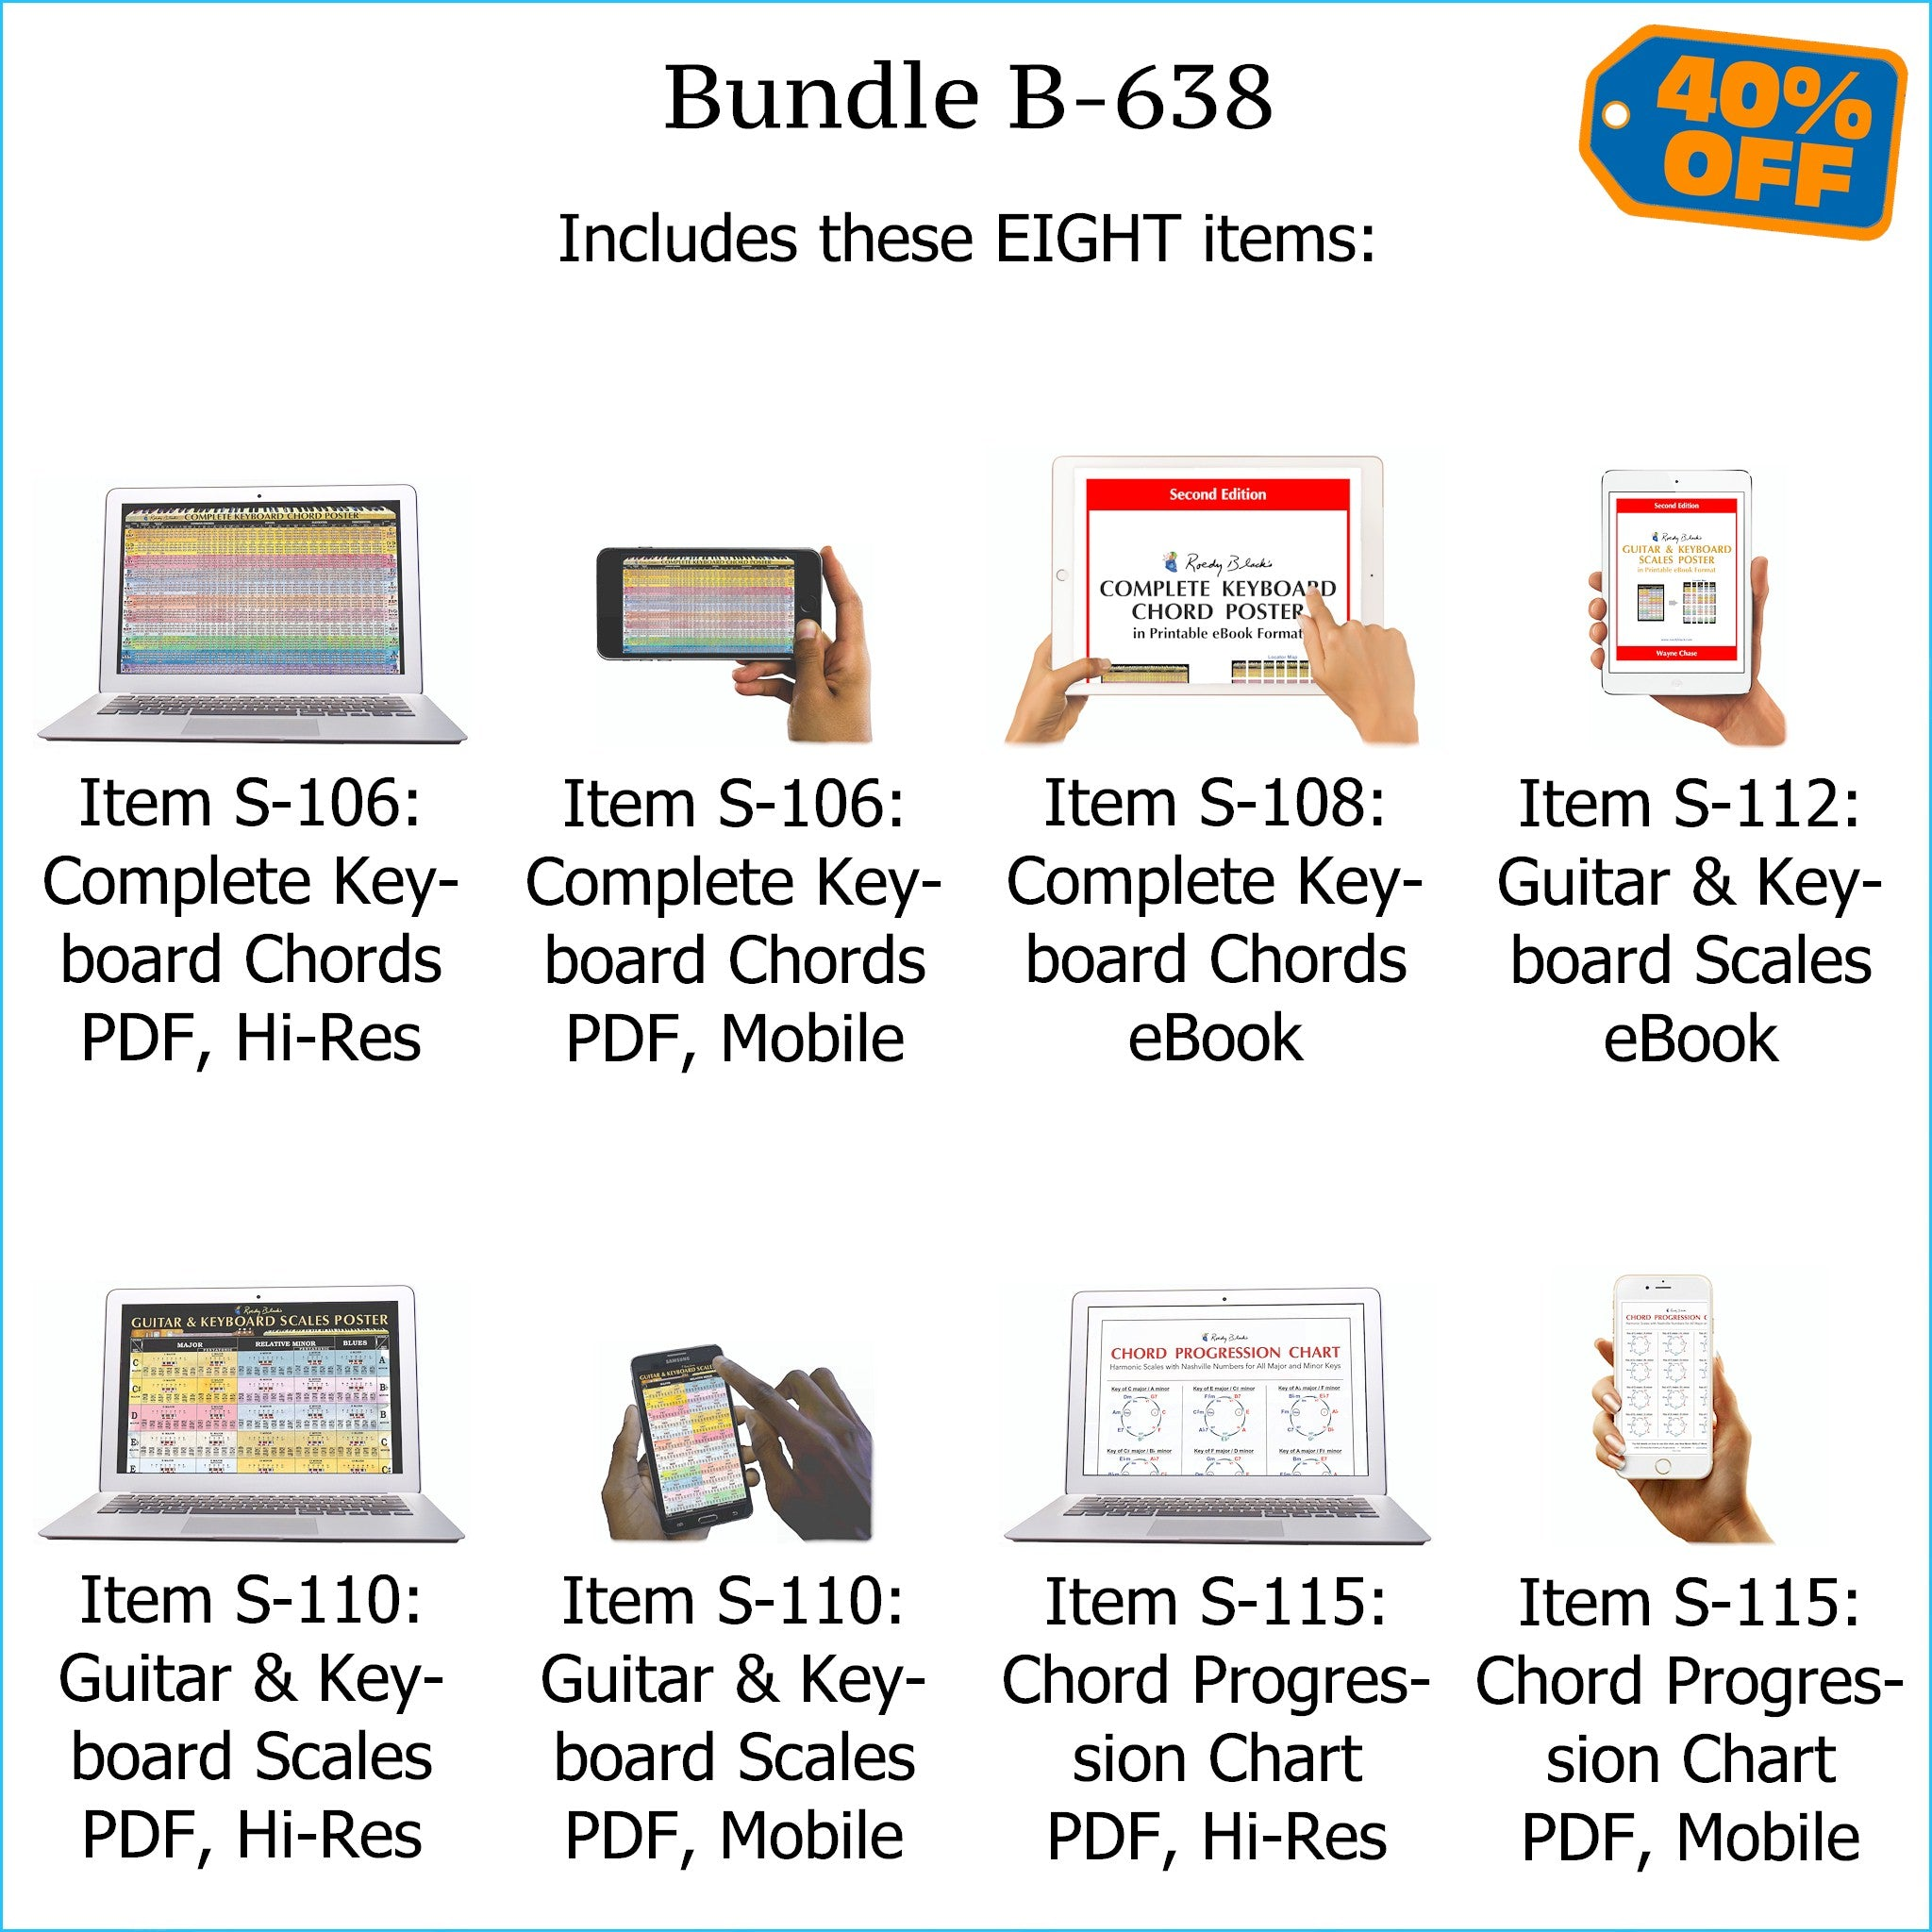 Bundle B-638: Complete Keyboard Chords, Scales, Chord Progressions - E-Posters and Printable E-Books. FREE Download Protection.